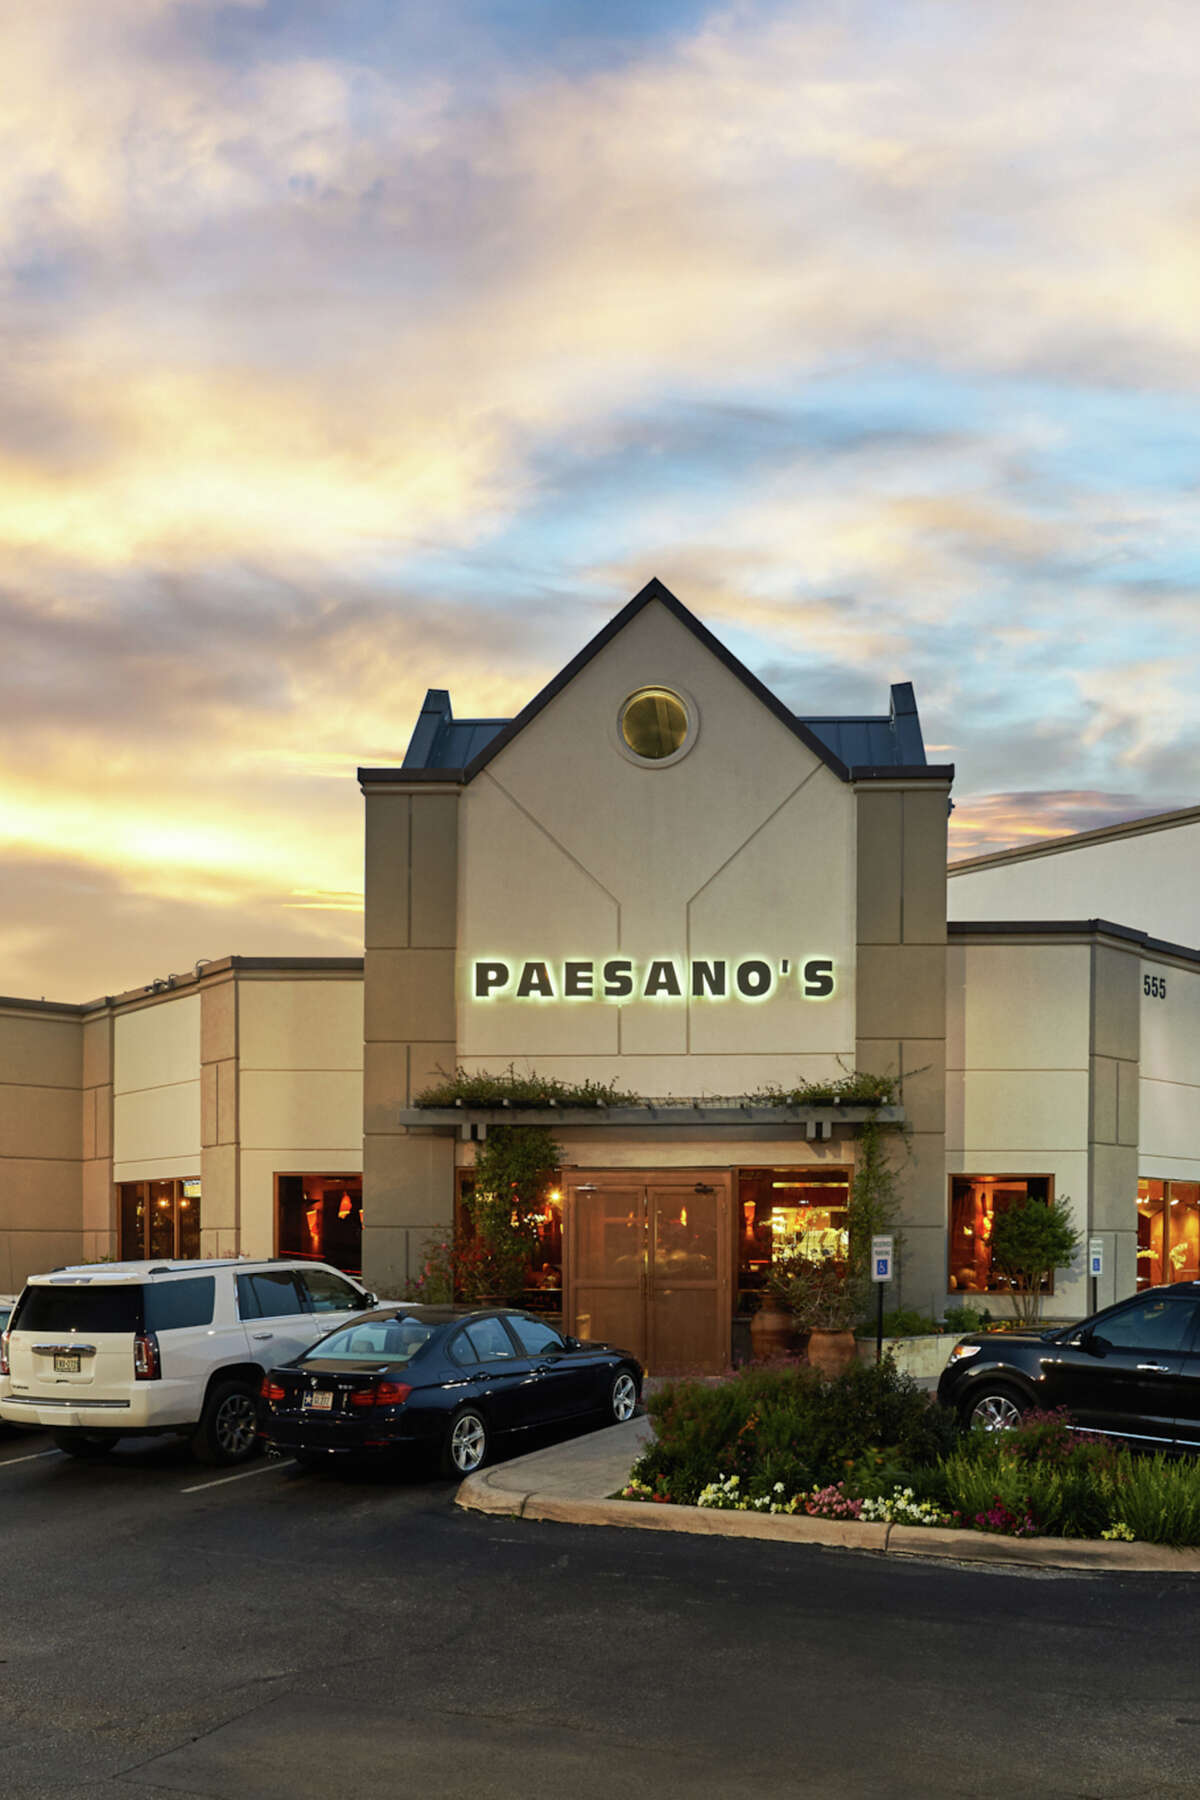 History happens here at Paesanos, and every person that walks through the doors, regardless of the location they visit, becomes a part of the story.